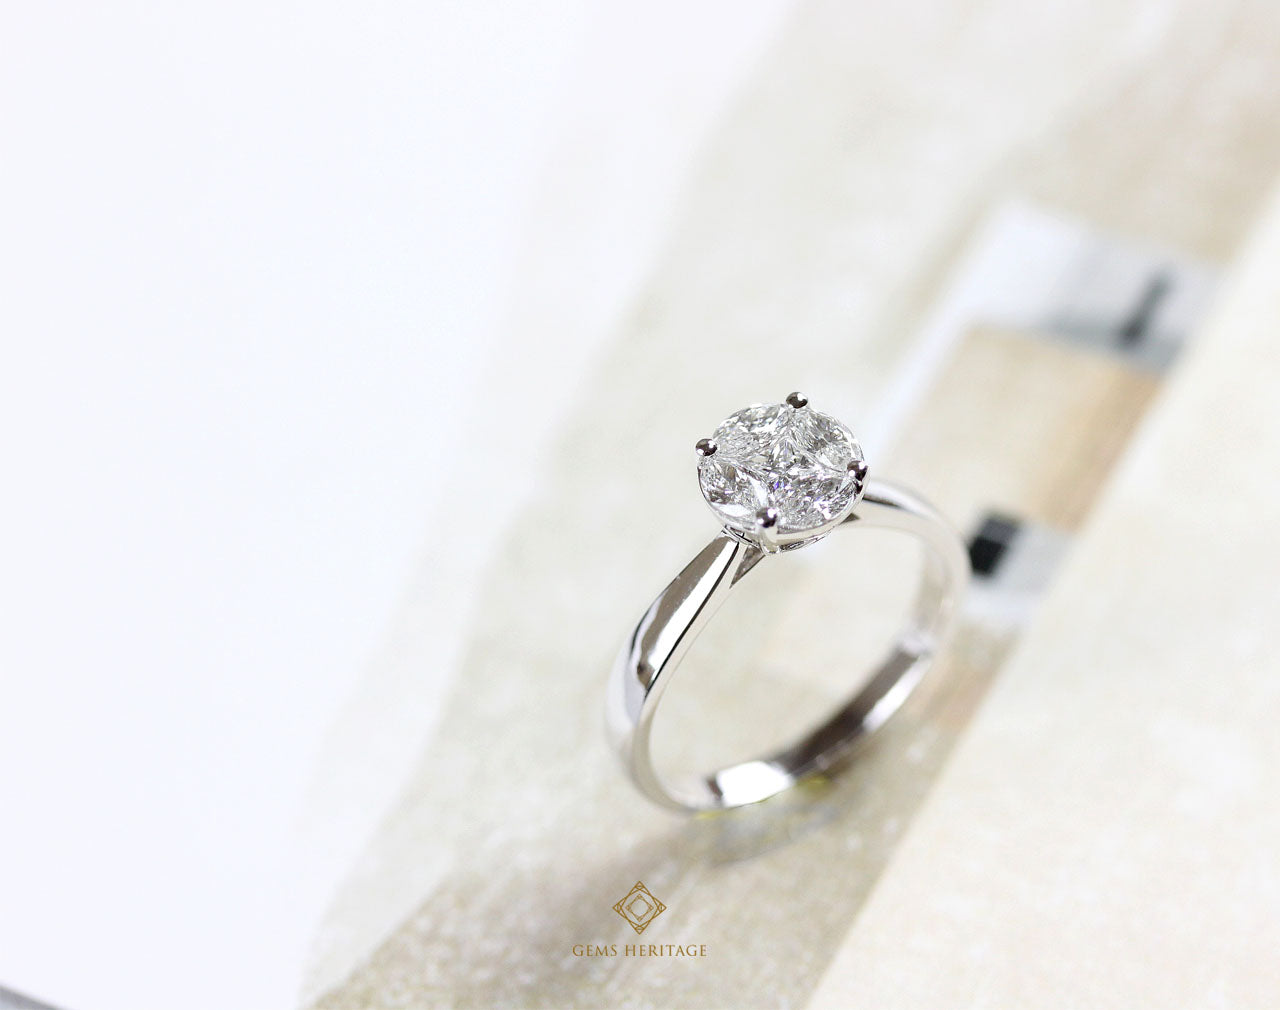 Illusion setting solitaire diamond ring (1.8 cts face)